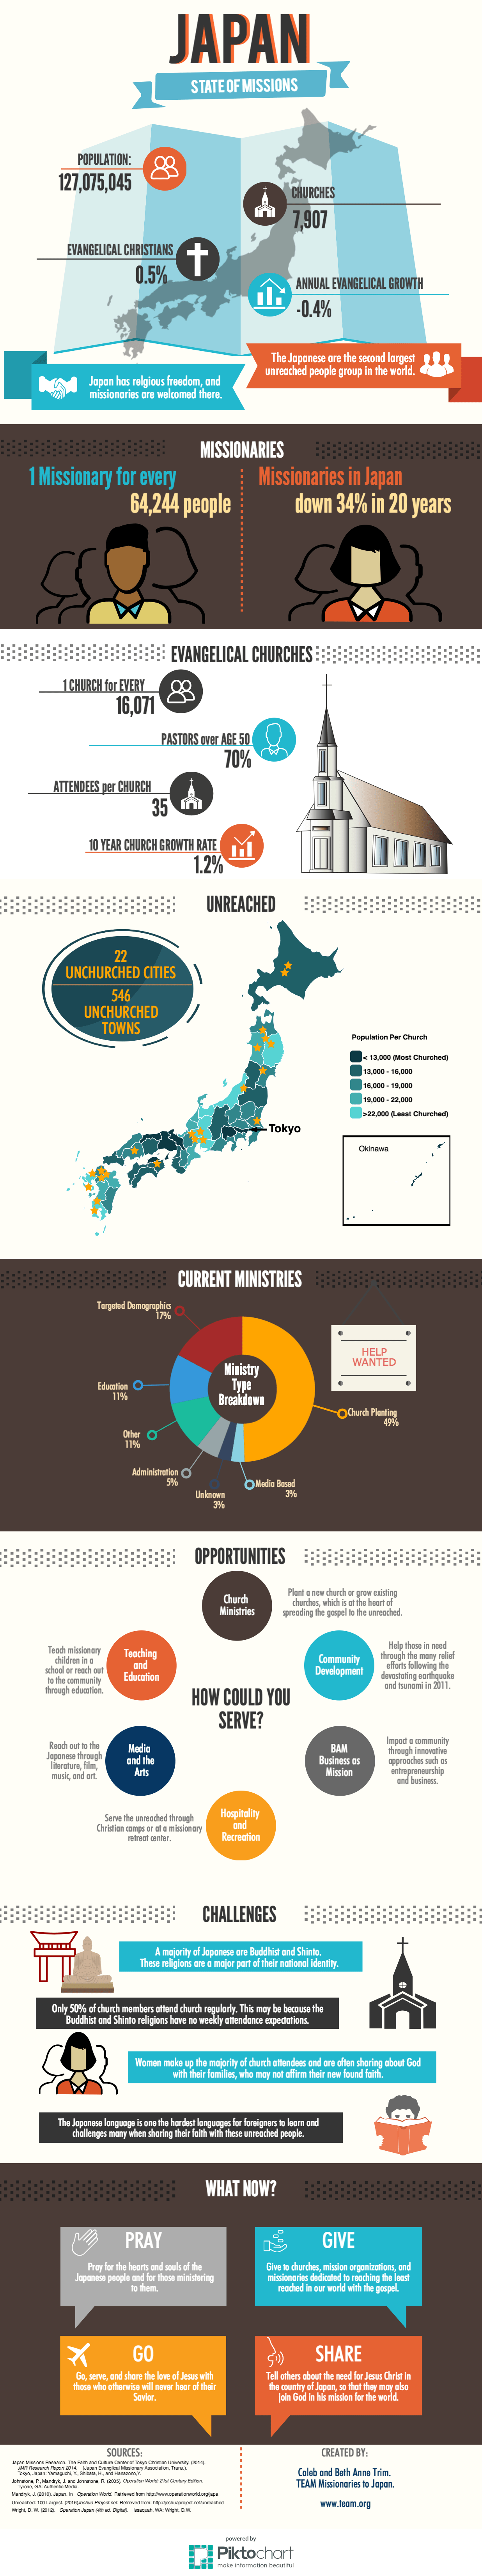 Infographic on the state of missions in Japan used with permission from our friends at OMF.